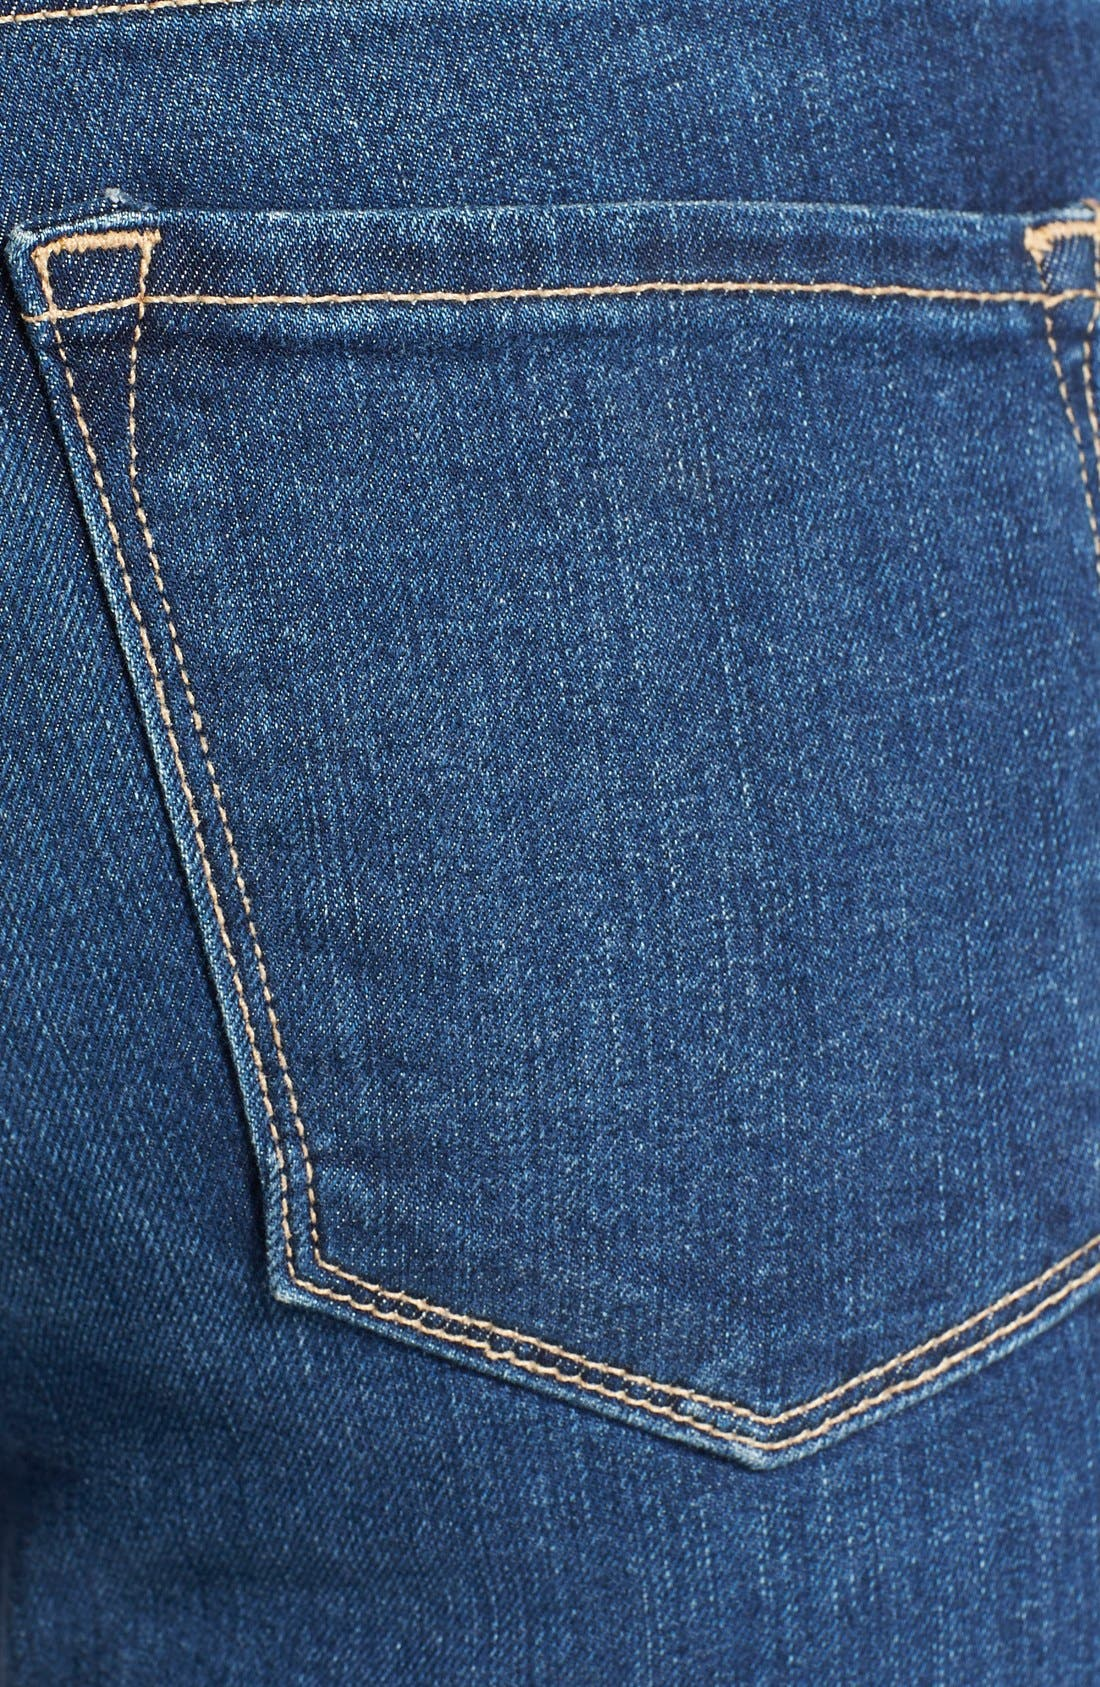 Alternate Image 3  - Frame Denim 'Le Skinny de Jeanne' Jeans (Columbia Road)